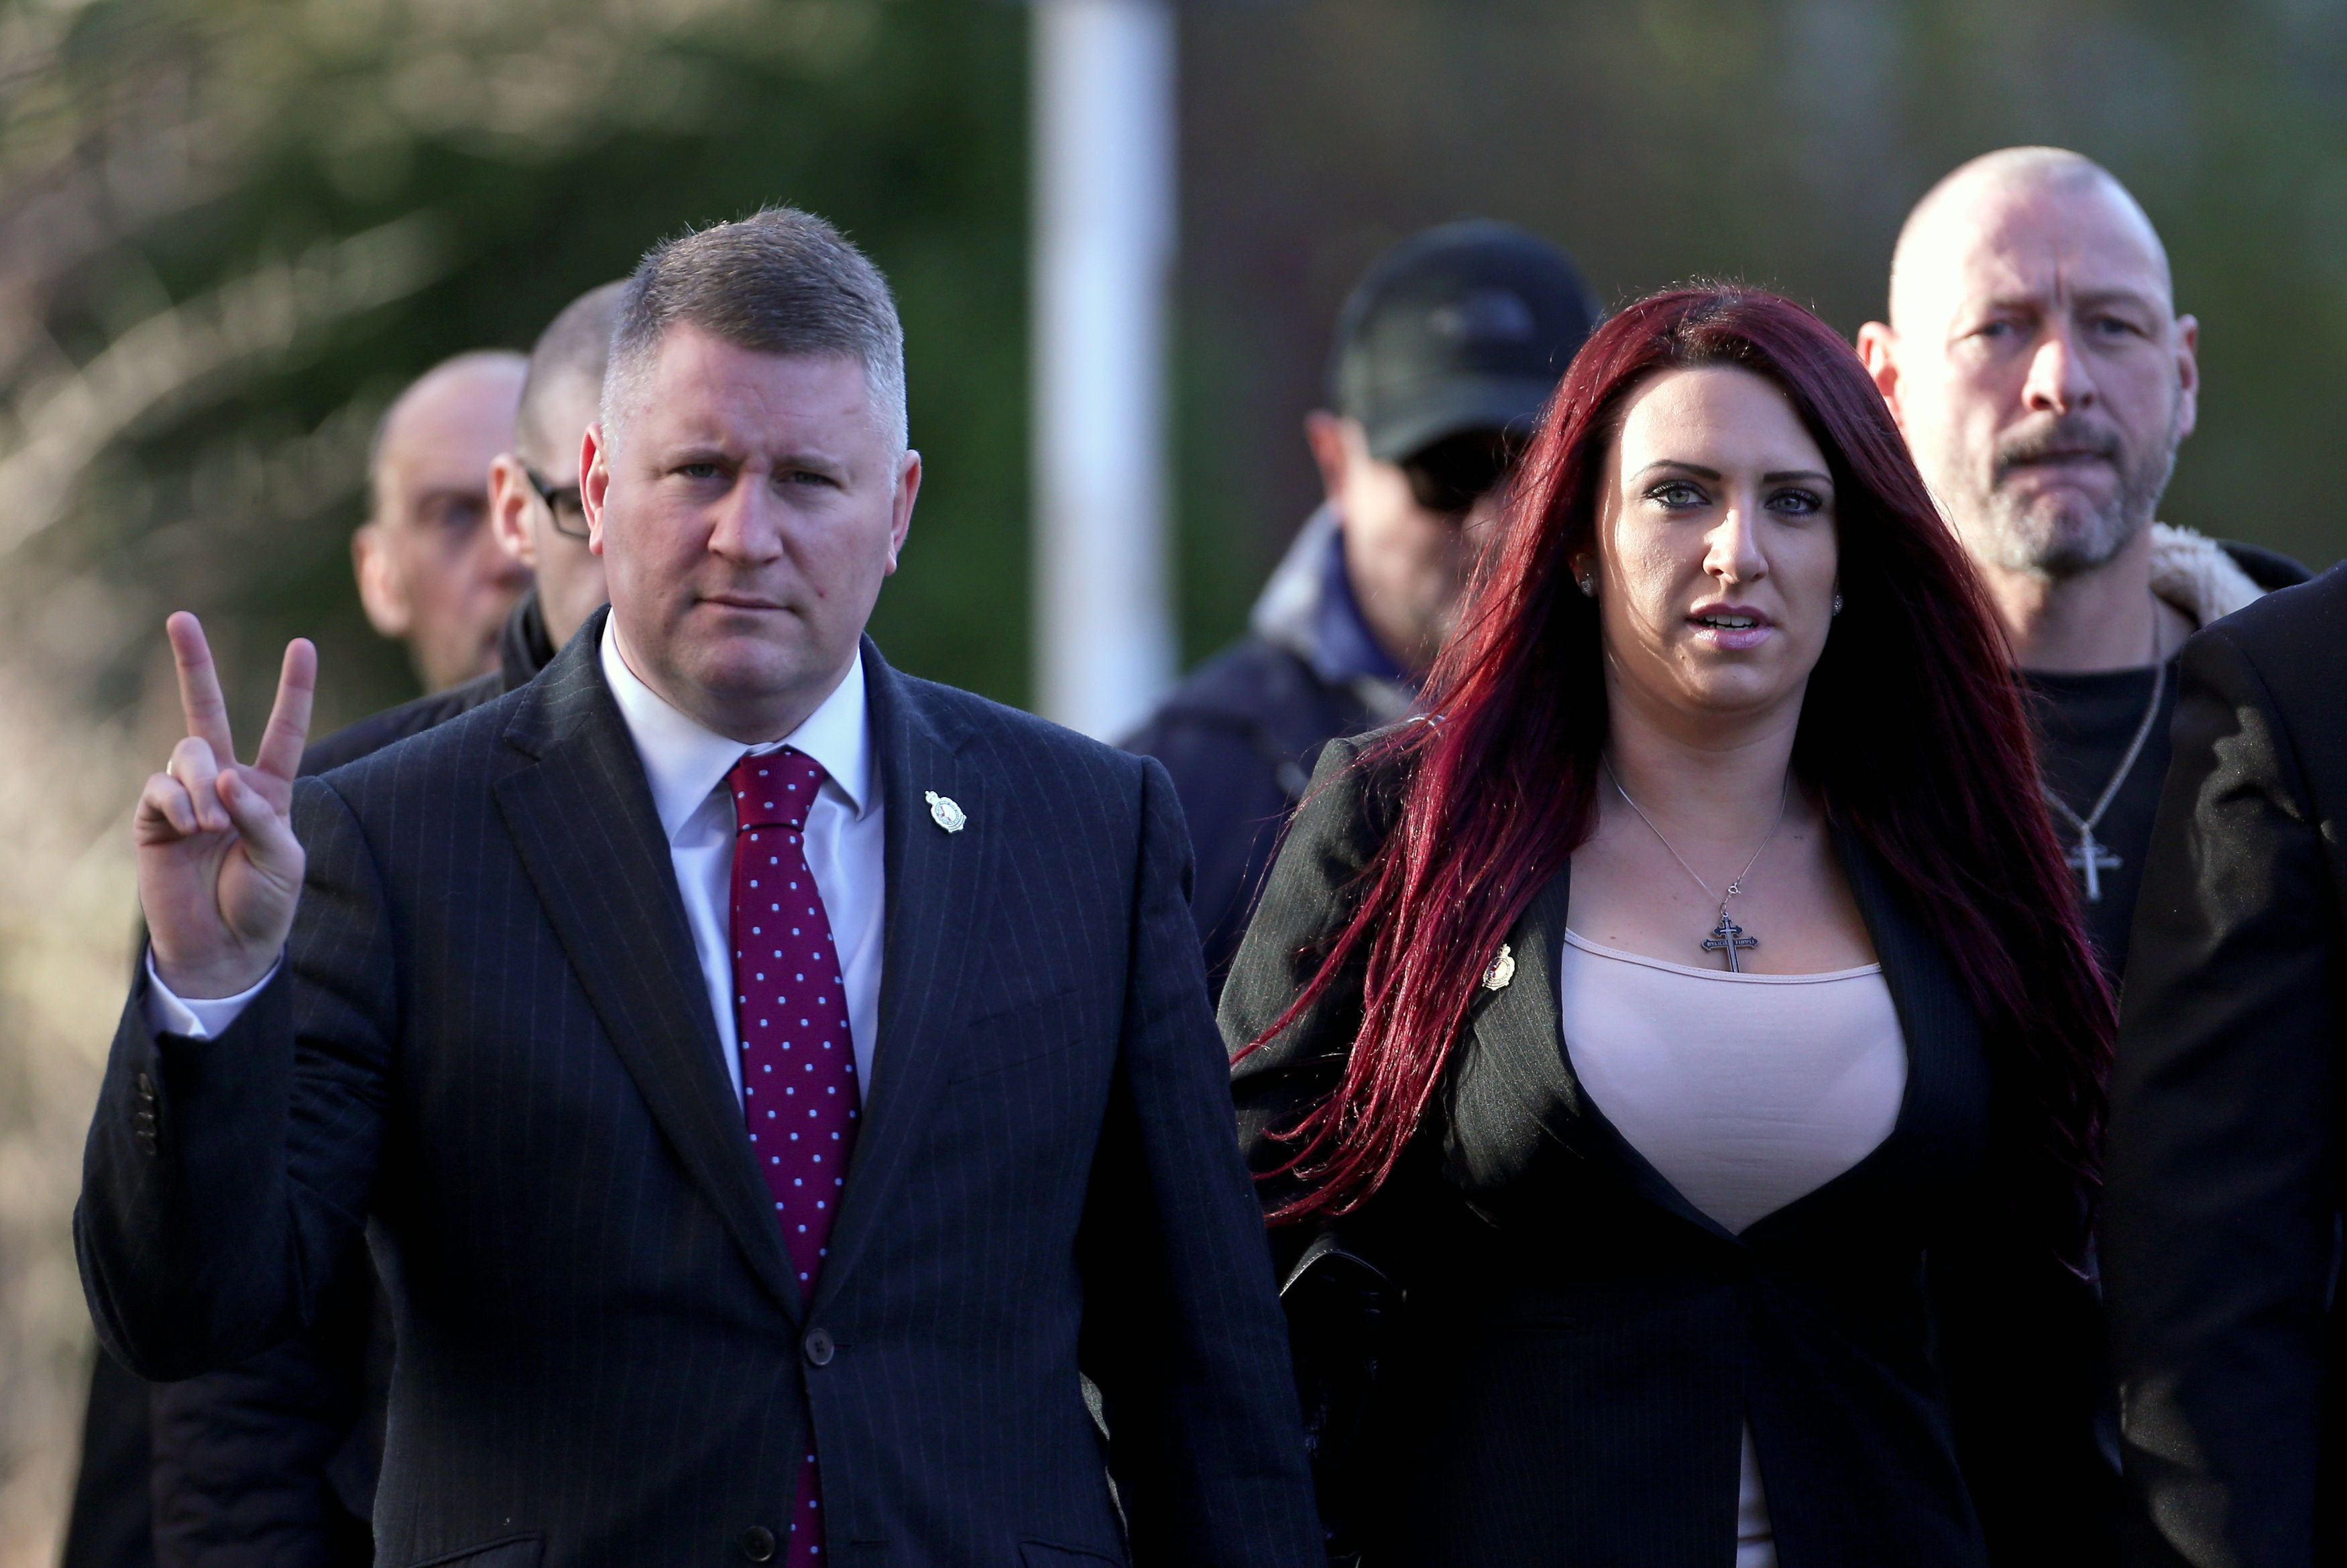 Britain First leaders found guilty of anti-Muslim hate crime